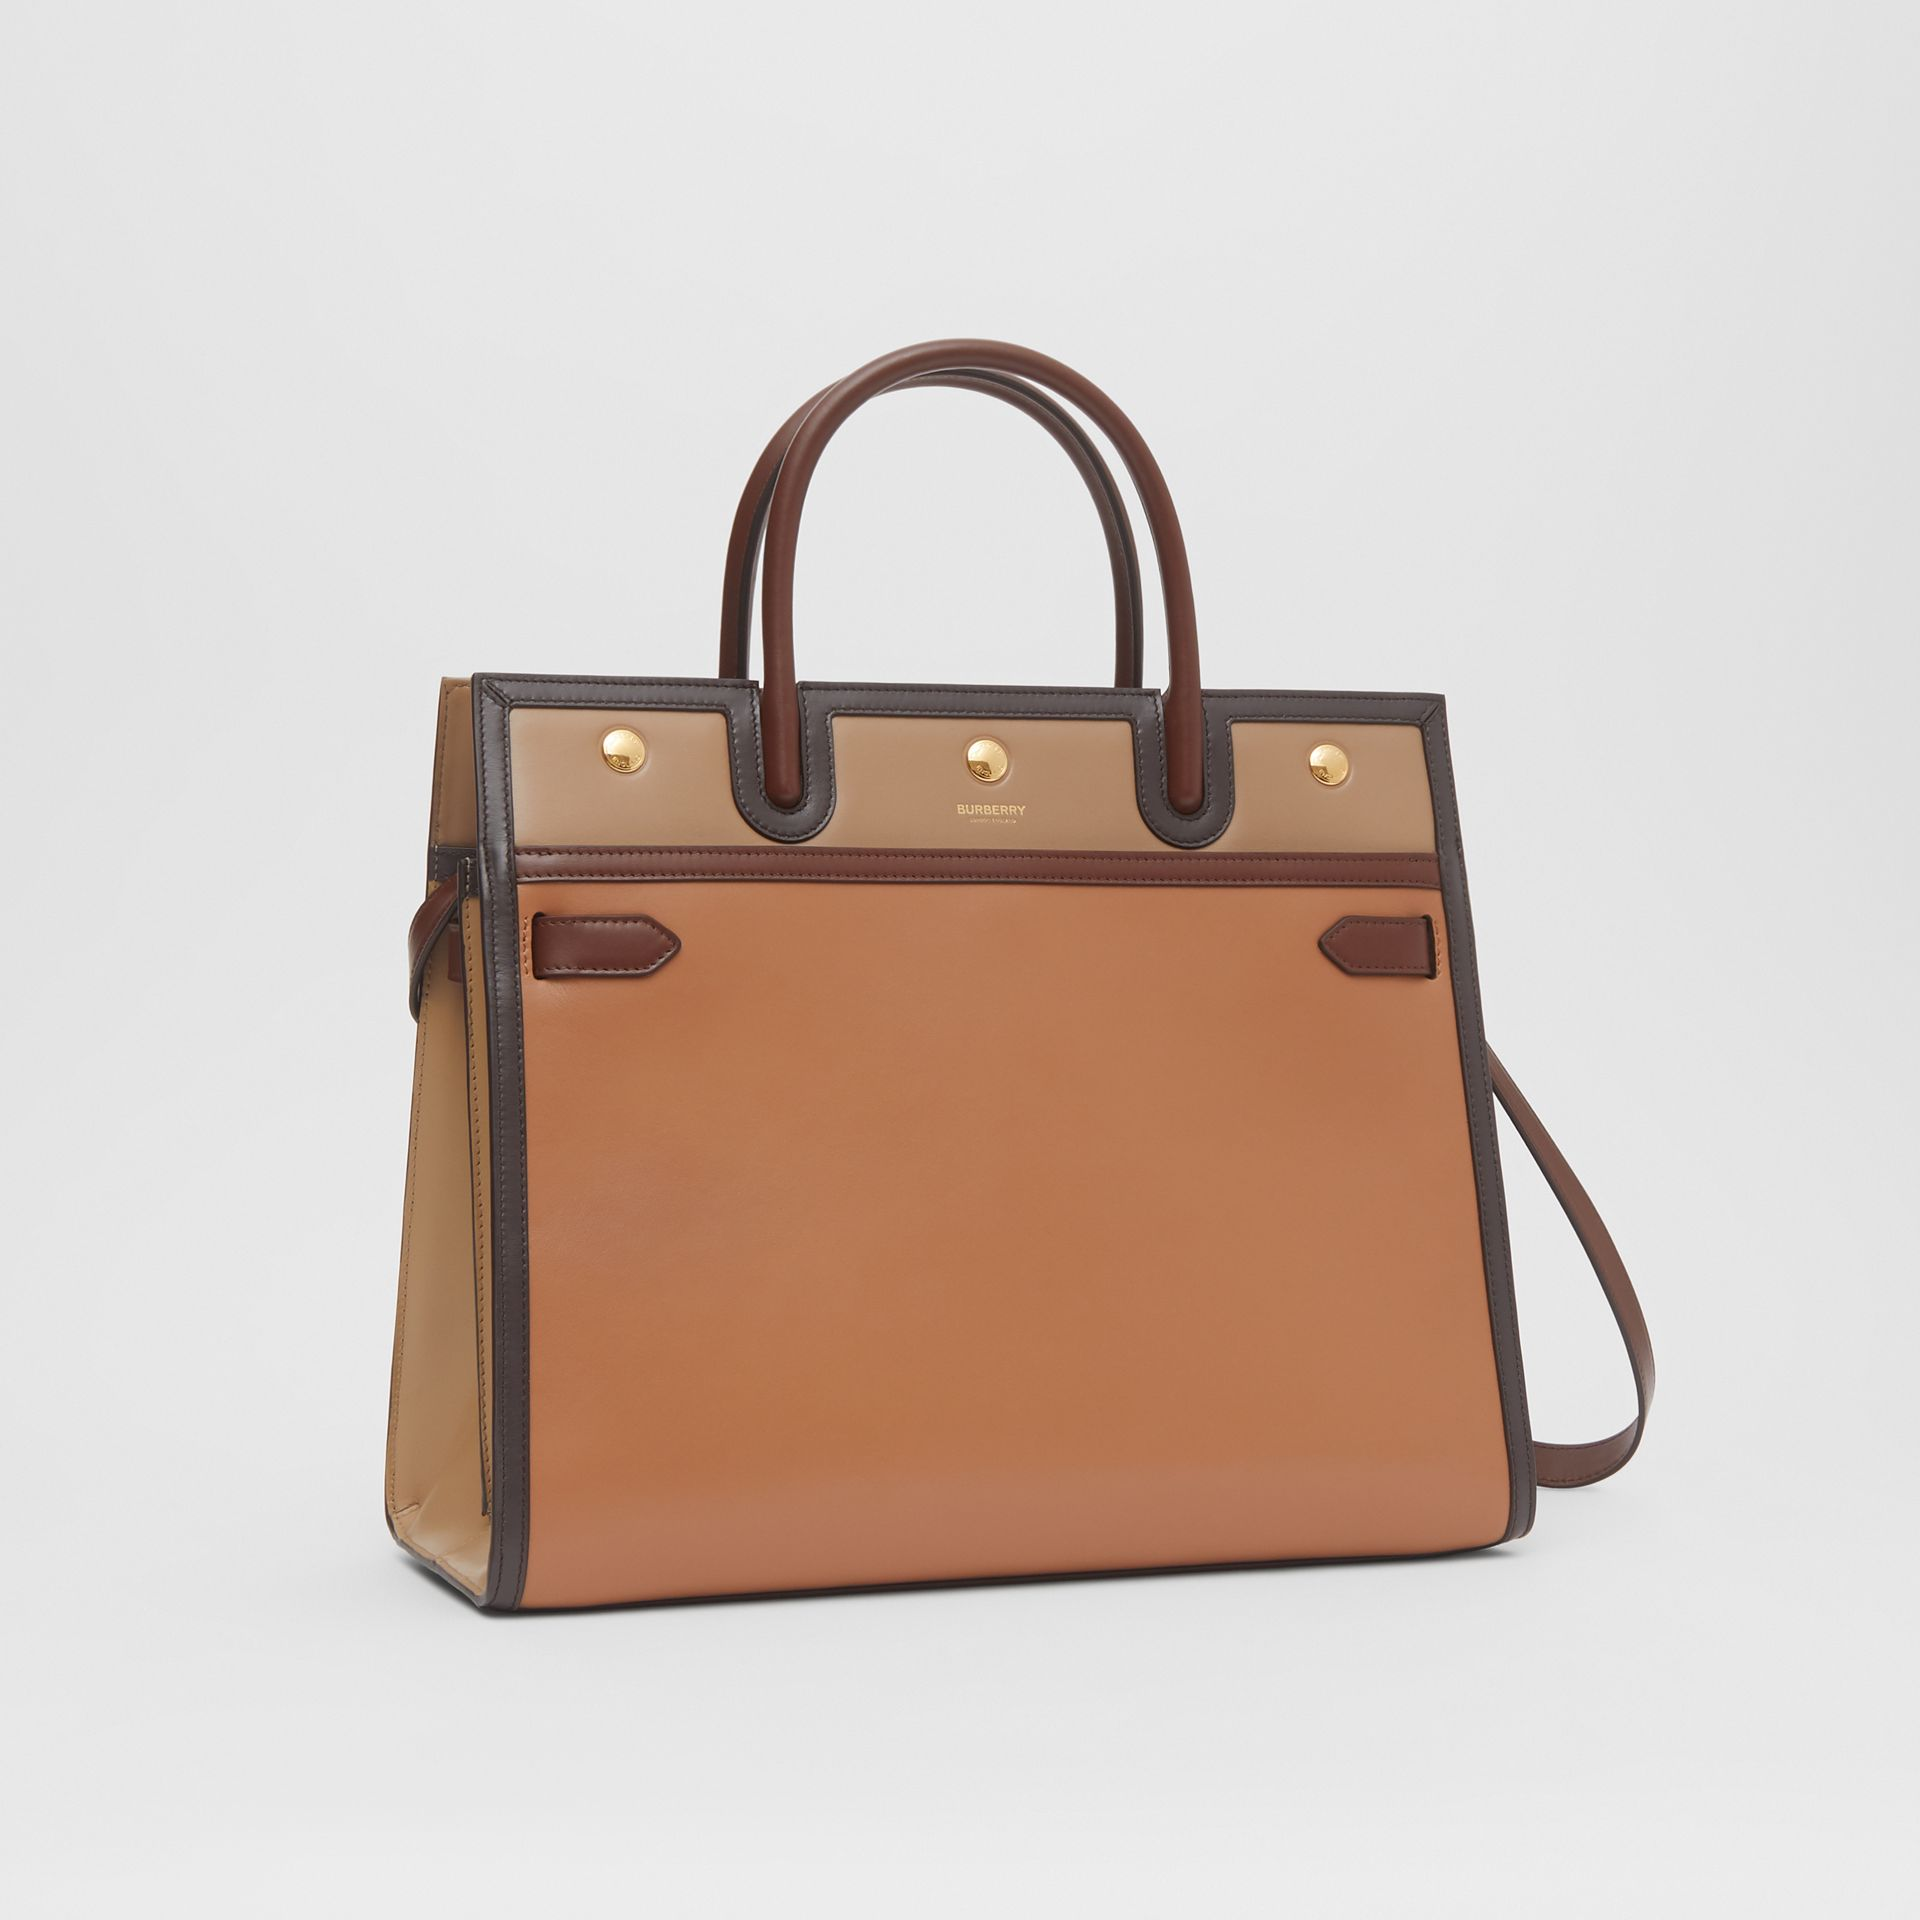 Medium Colour Block Leather Two-handle Title Bag in Soft Fawn - Women | Burberry United States - gallery image 6